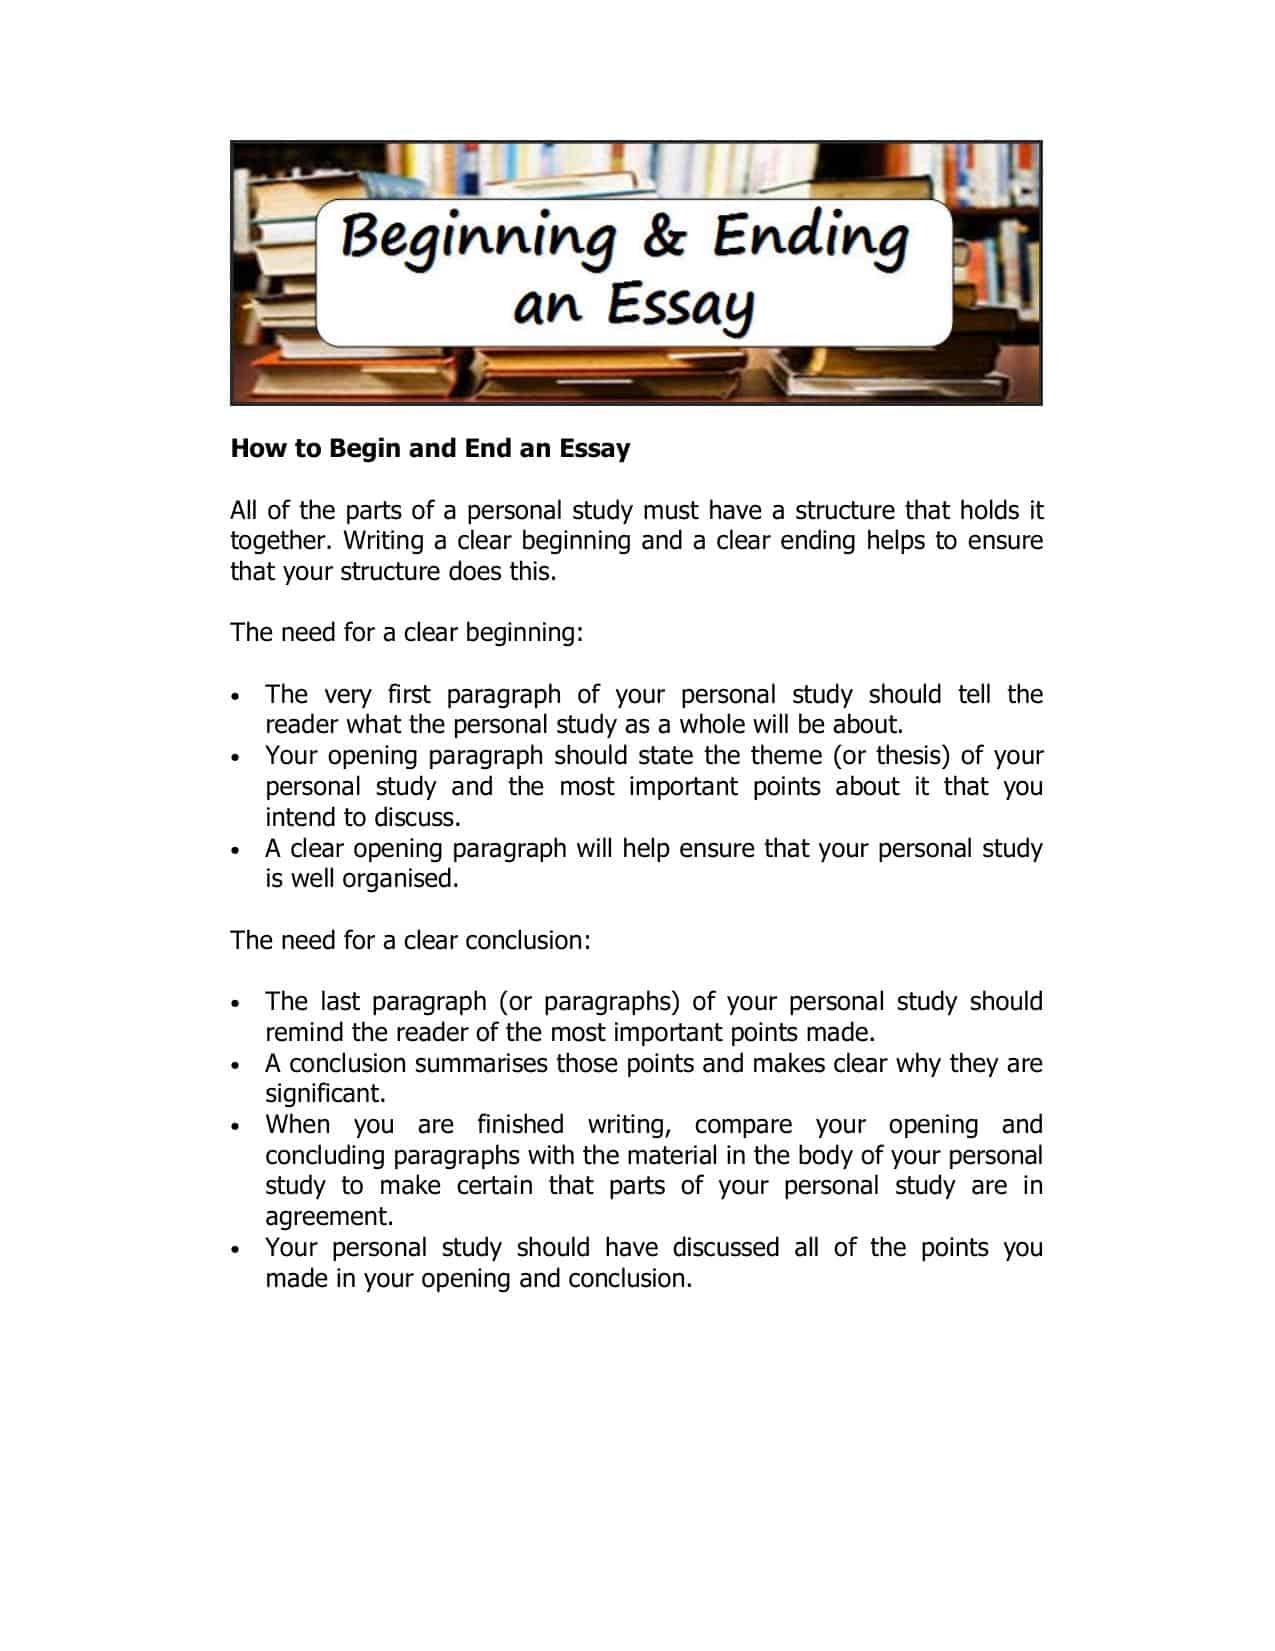 Beginning and ending an essay